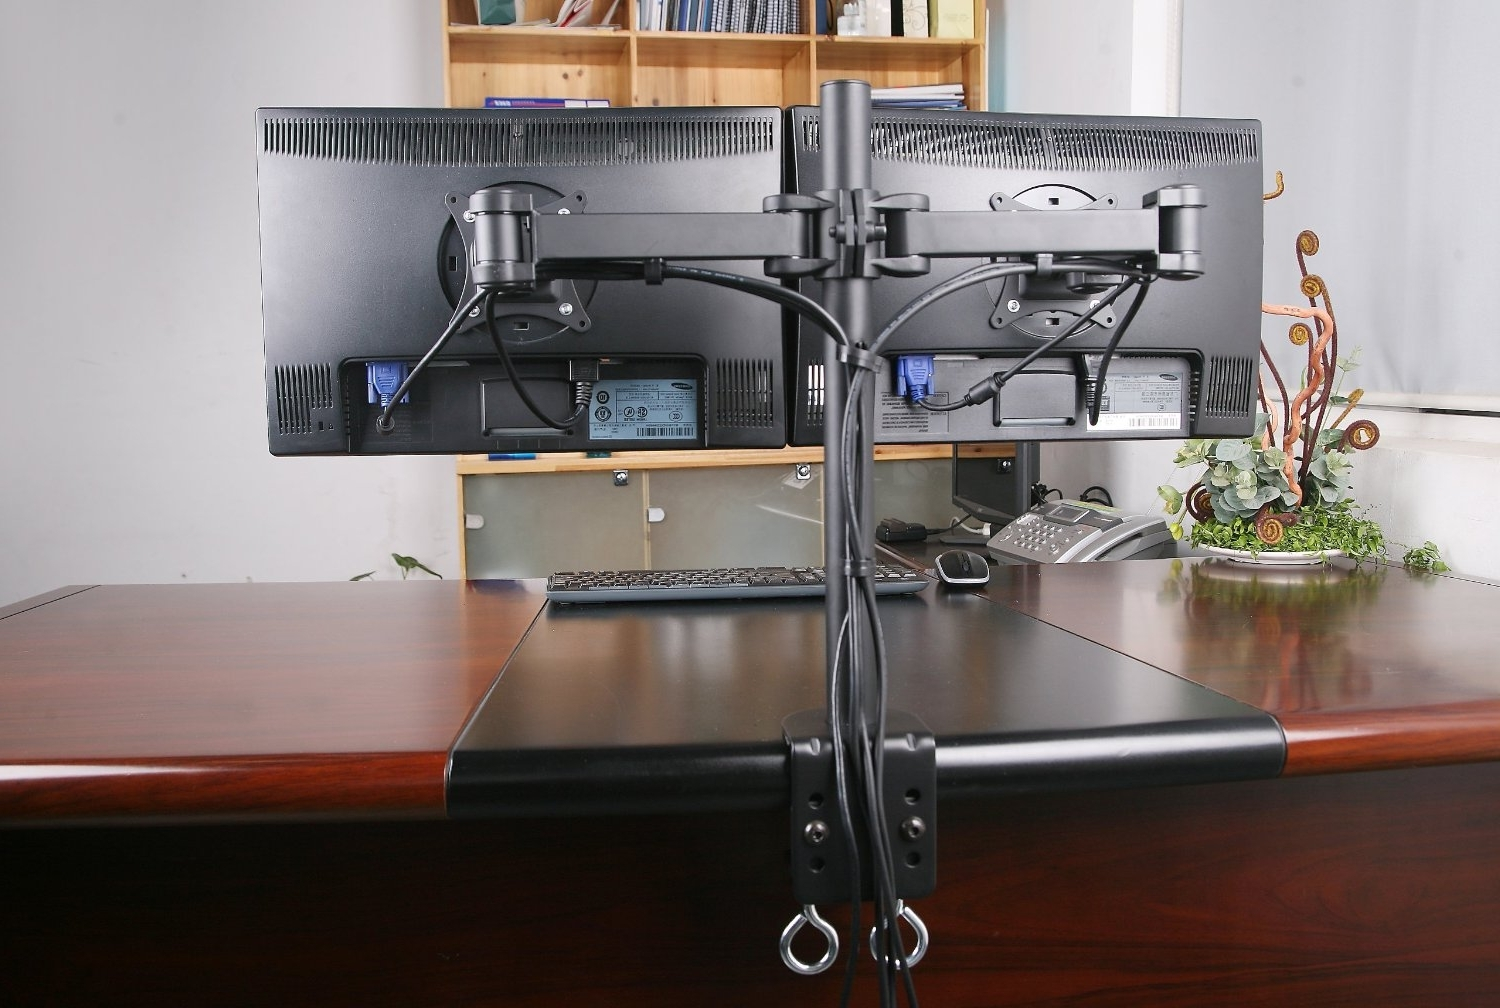 Awesome Wonderful Dual Monitor Desk Stand Organizer Design Ideas For 2018 Computer Desks With Monitor Mount (View 5 of 20)